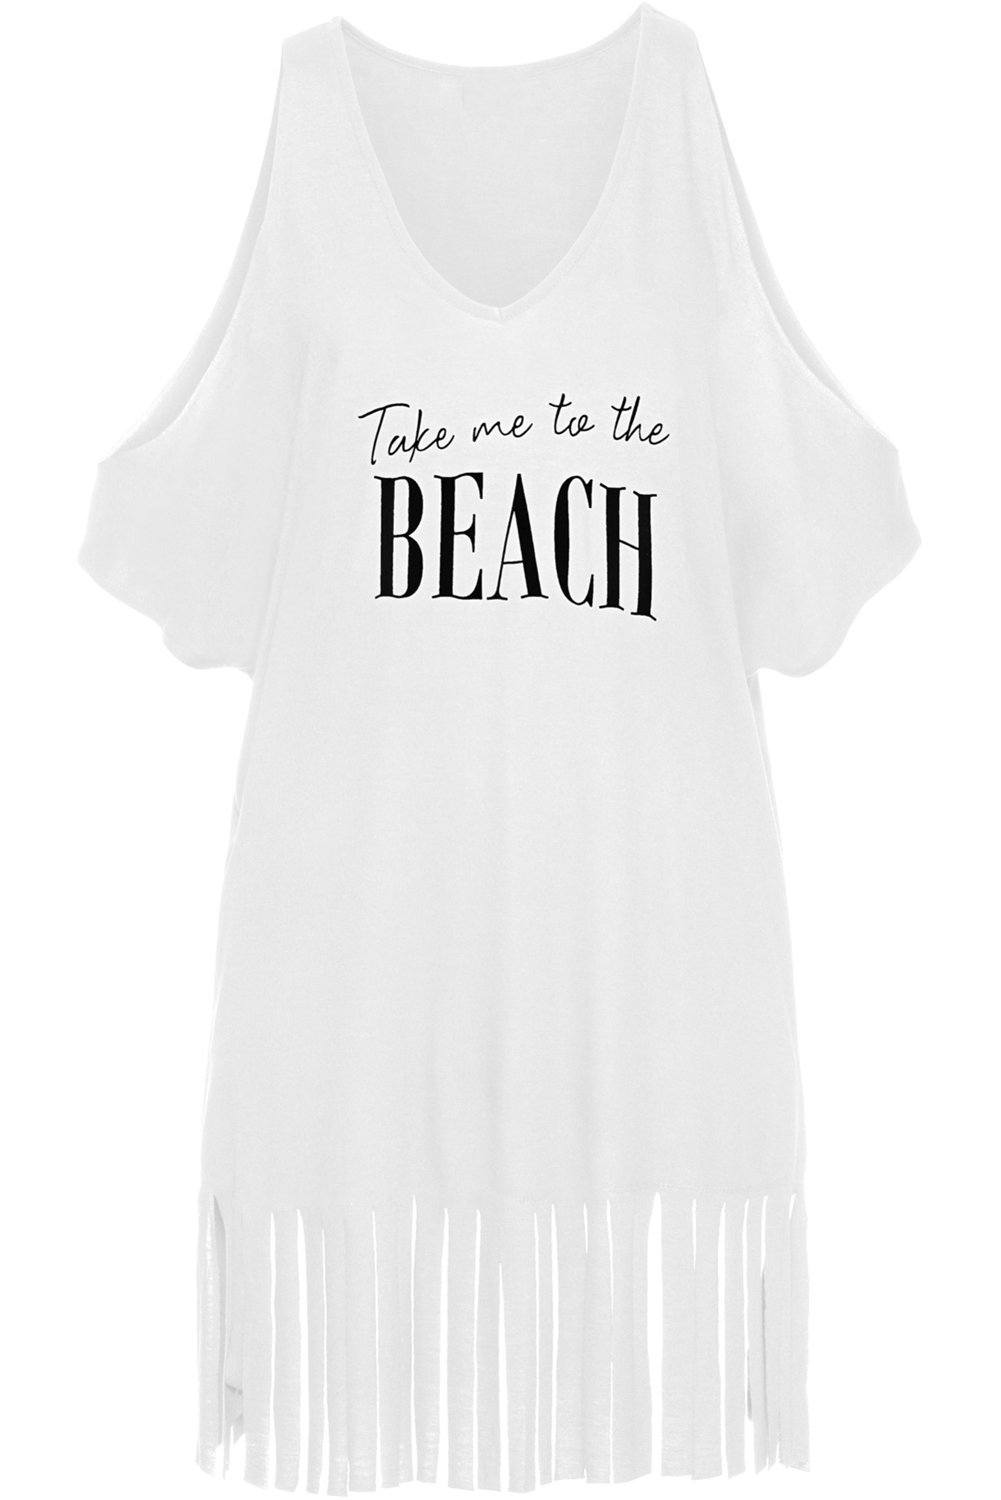 14645229eb ... White Loose Fit Take me to the BEACH Cover up-BuyzfromtheAvenue ...